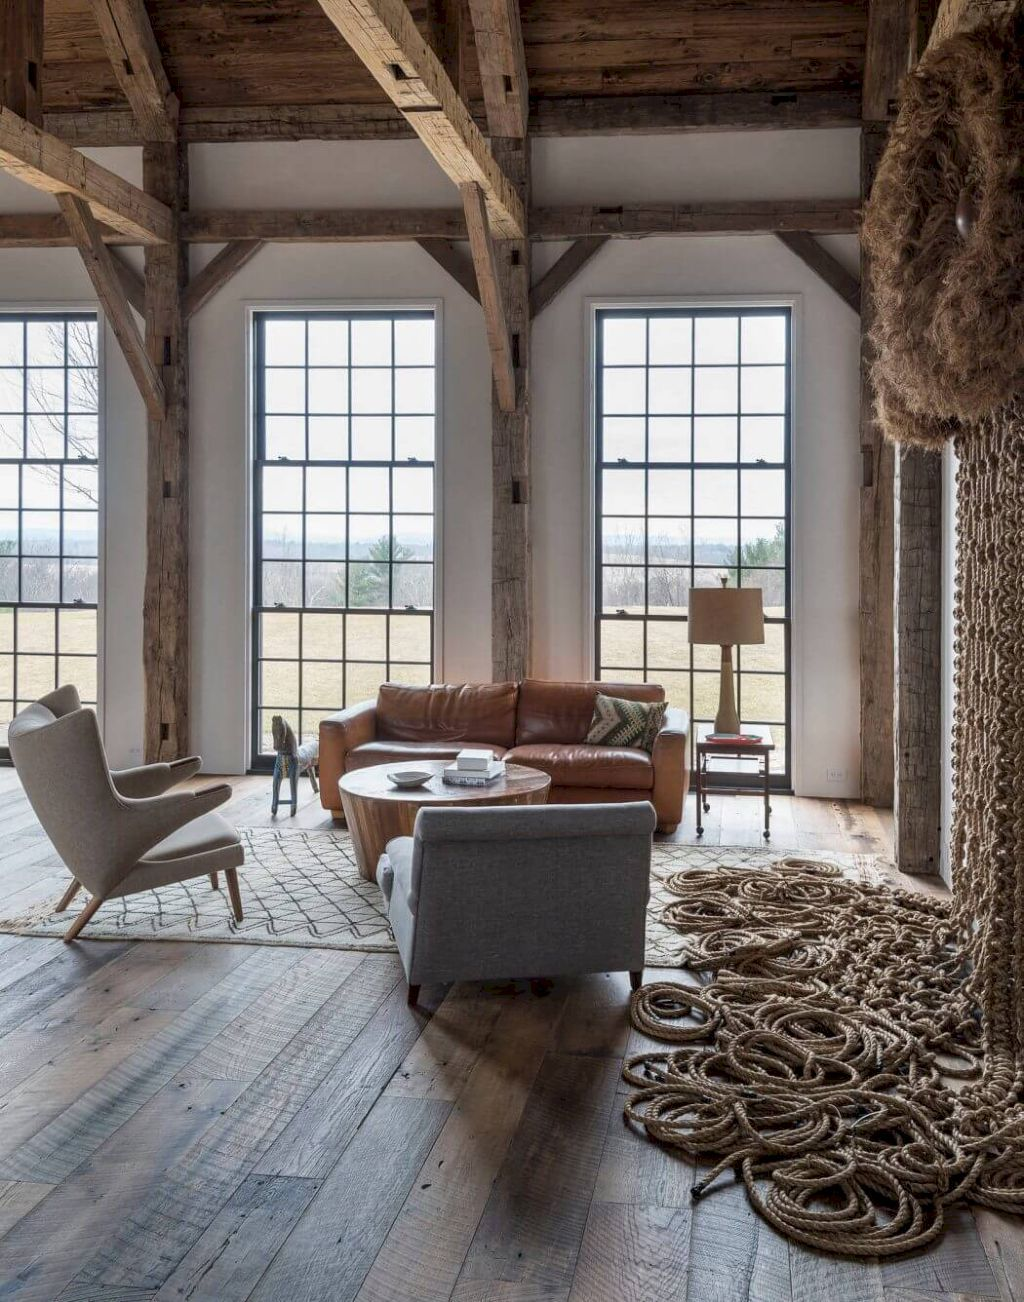 36 Stunning Modern Farmhouse Interior Desgin Ideas   Modern     Awesome 36 Stunning Modern Farmhouse Interior Desgin Ideas  https   bellezaroom com